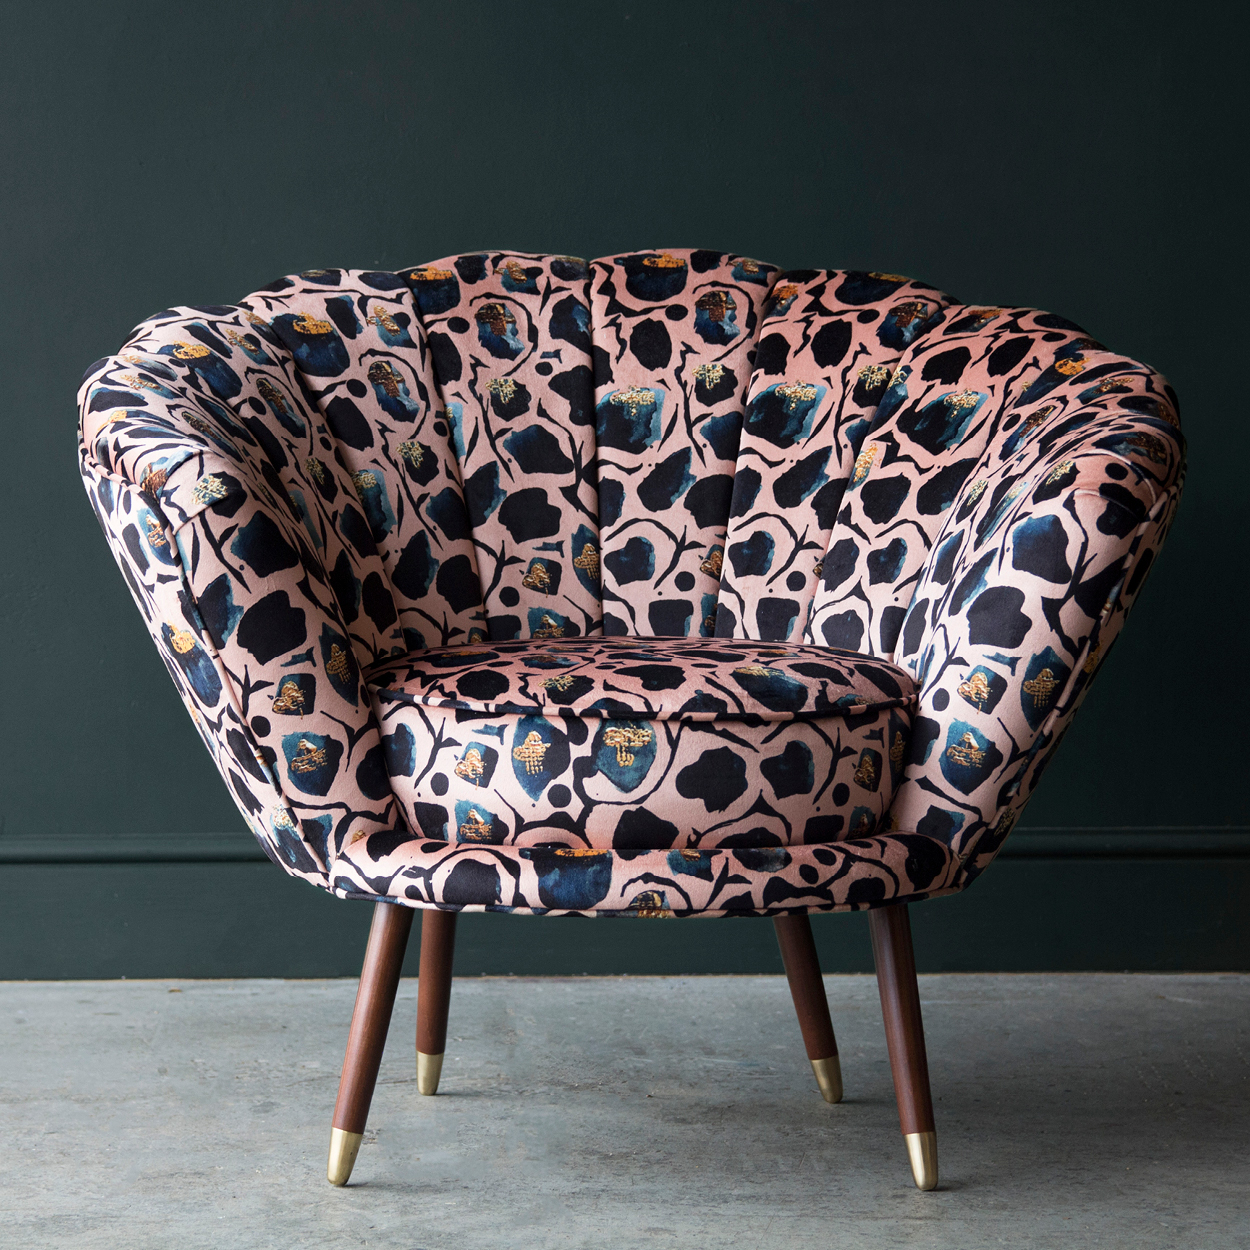 velvet armchair, velvet cocktail chair, Anna Hayman, house of sloane